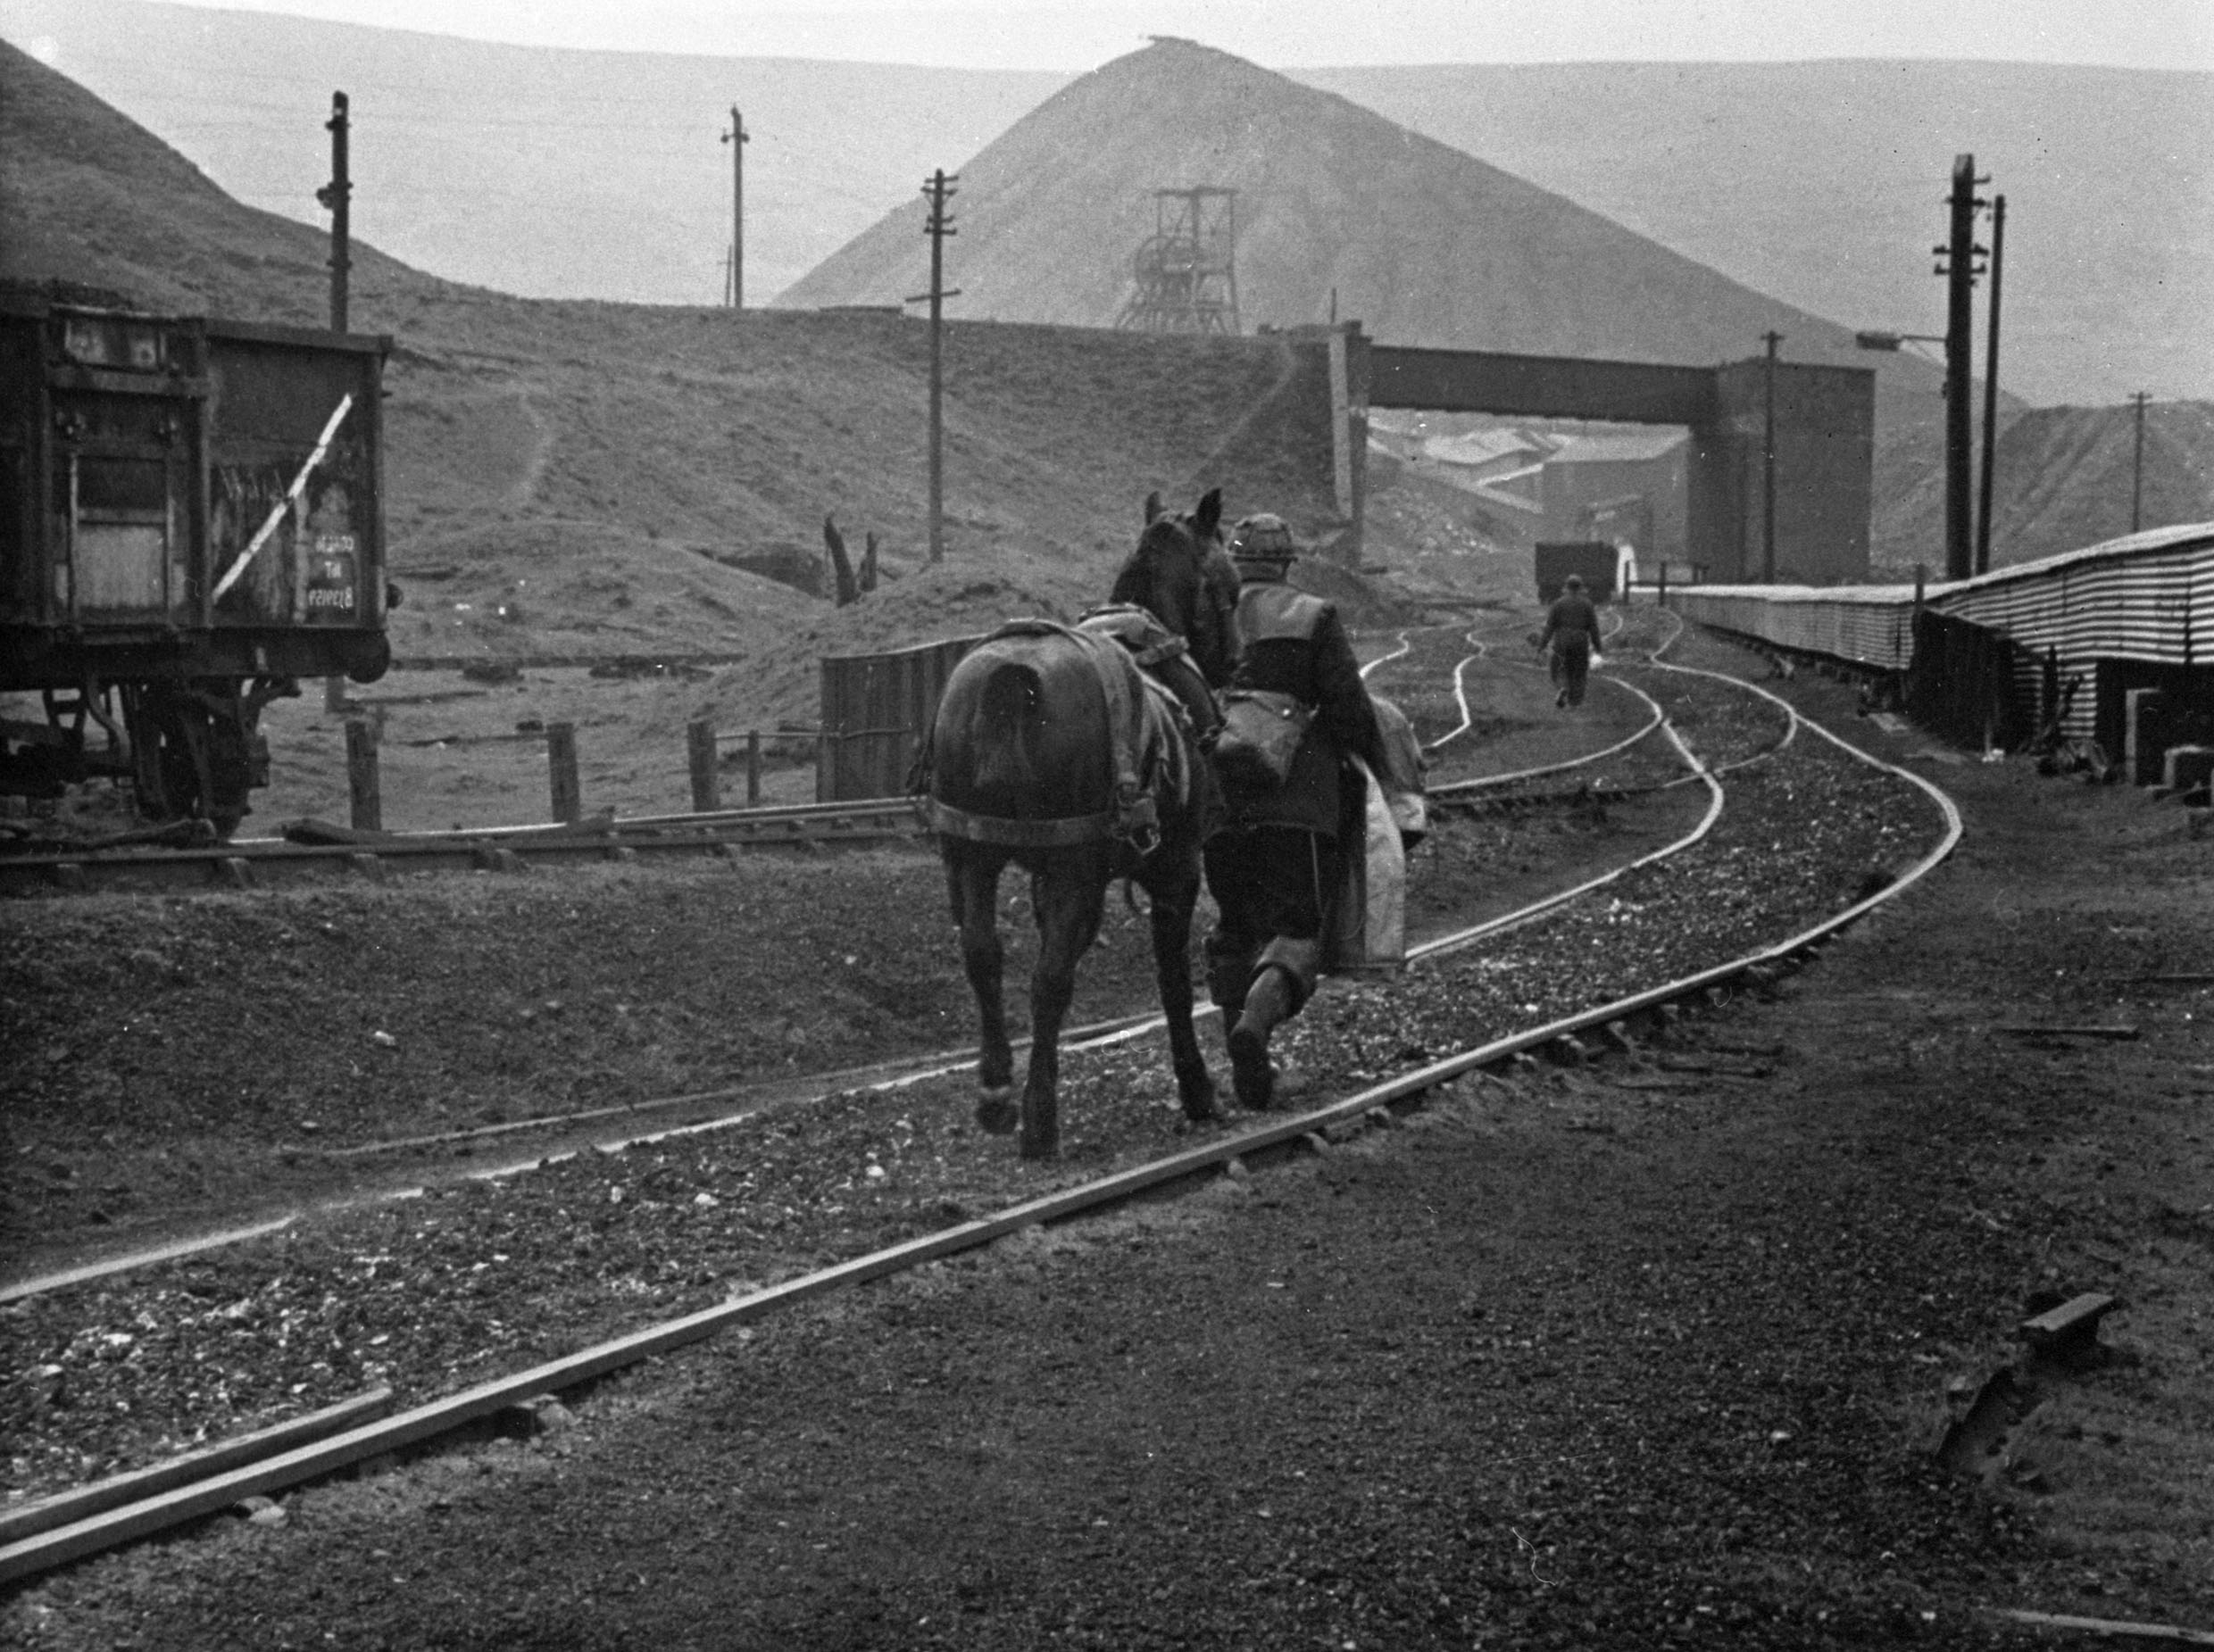 Colliery horse returning to Big Pit surface stables from the Washery in 1968.